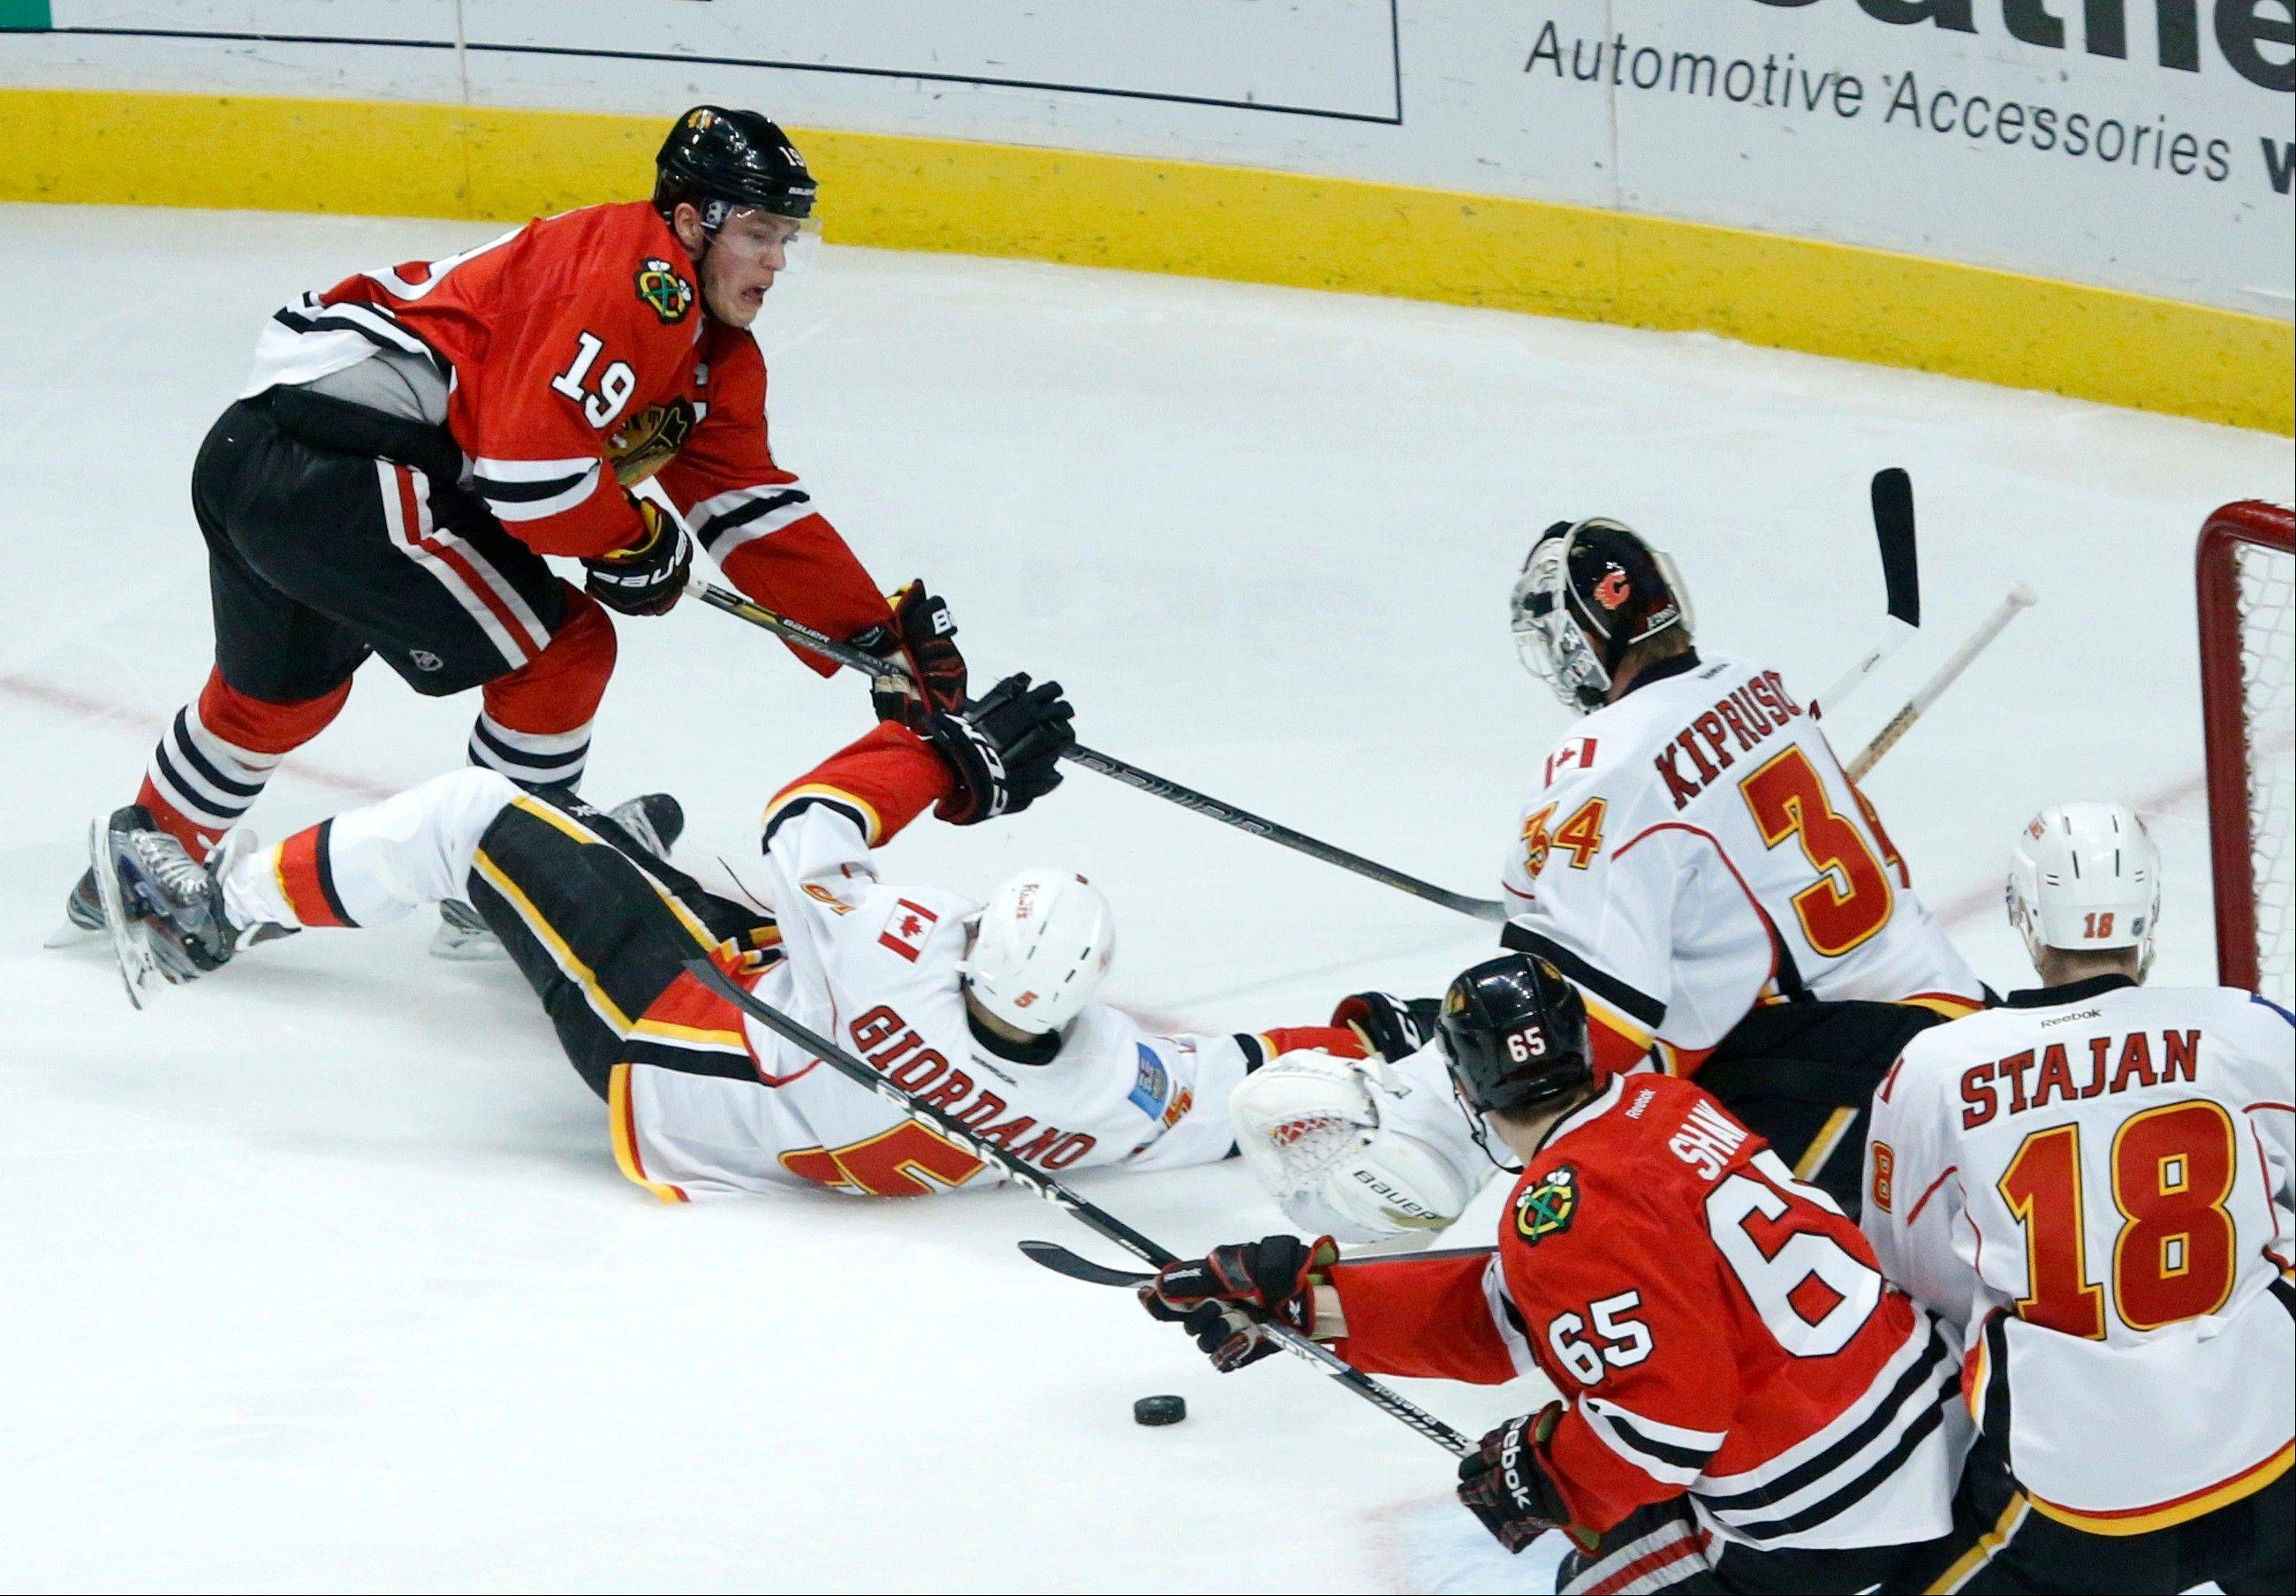 Images: Blackhawks vs. Flames